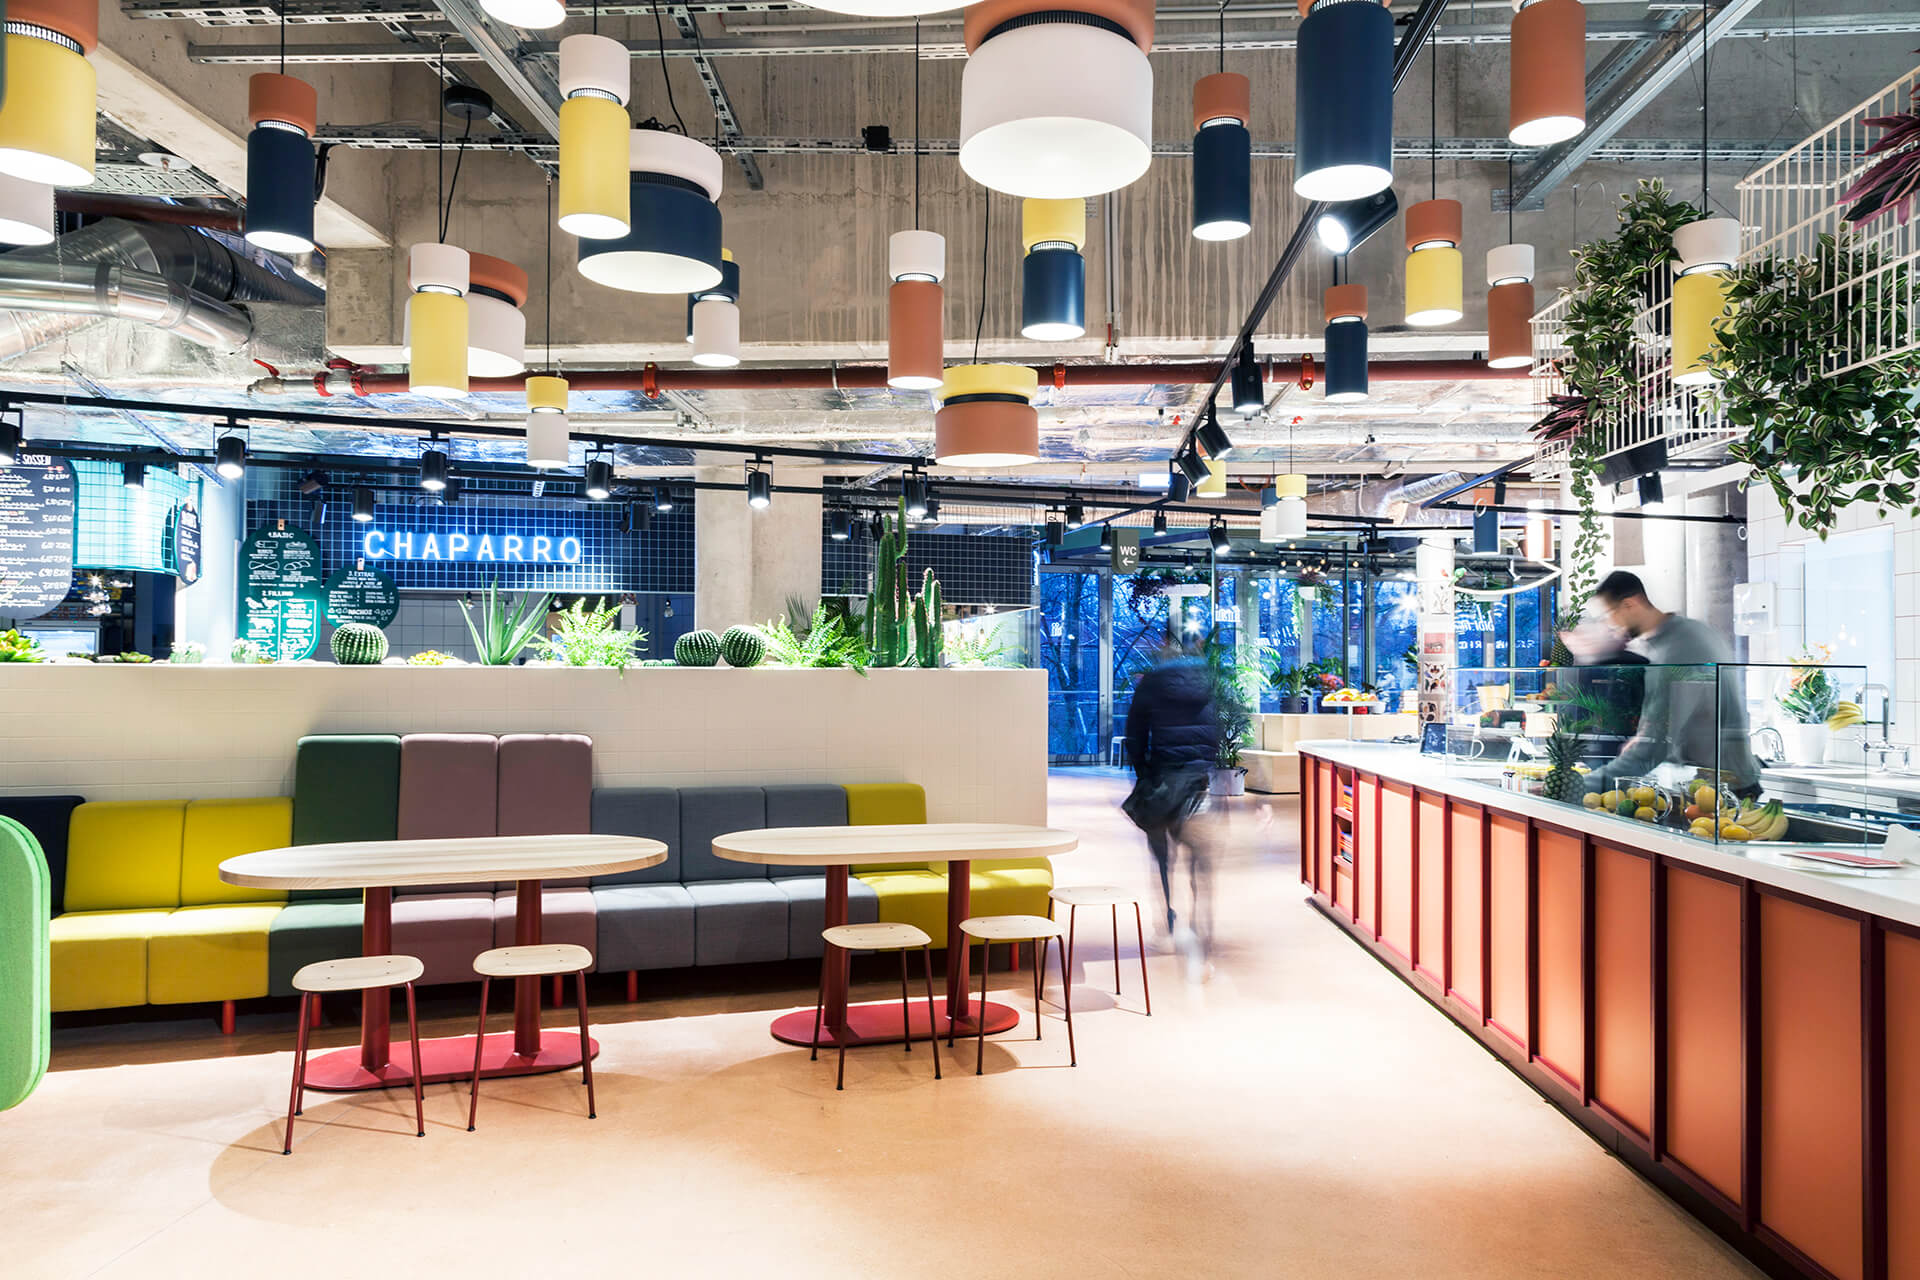 Studio Aisslinger's  Kantini at Bikini Berlin  - a concept shopping centre that purports to be Europe's first design food court  image and cover image via Frame